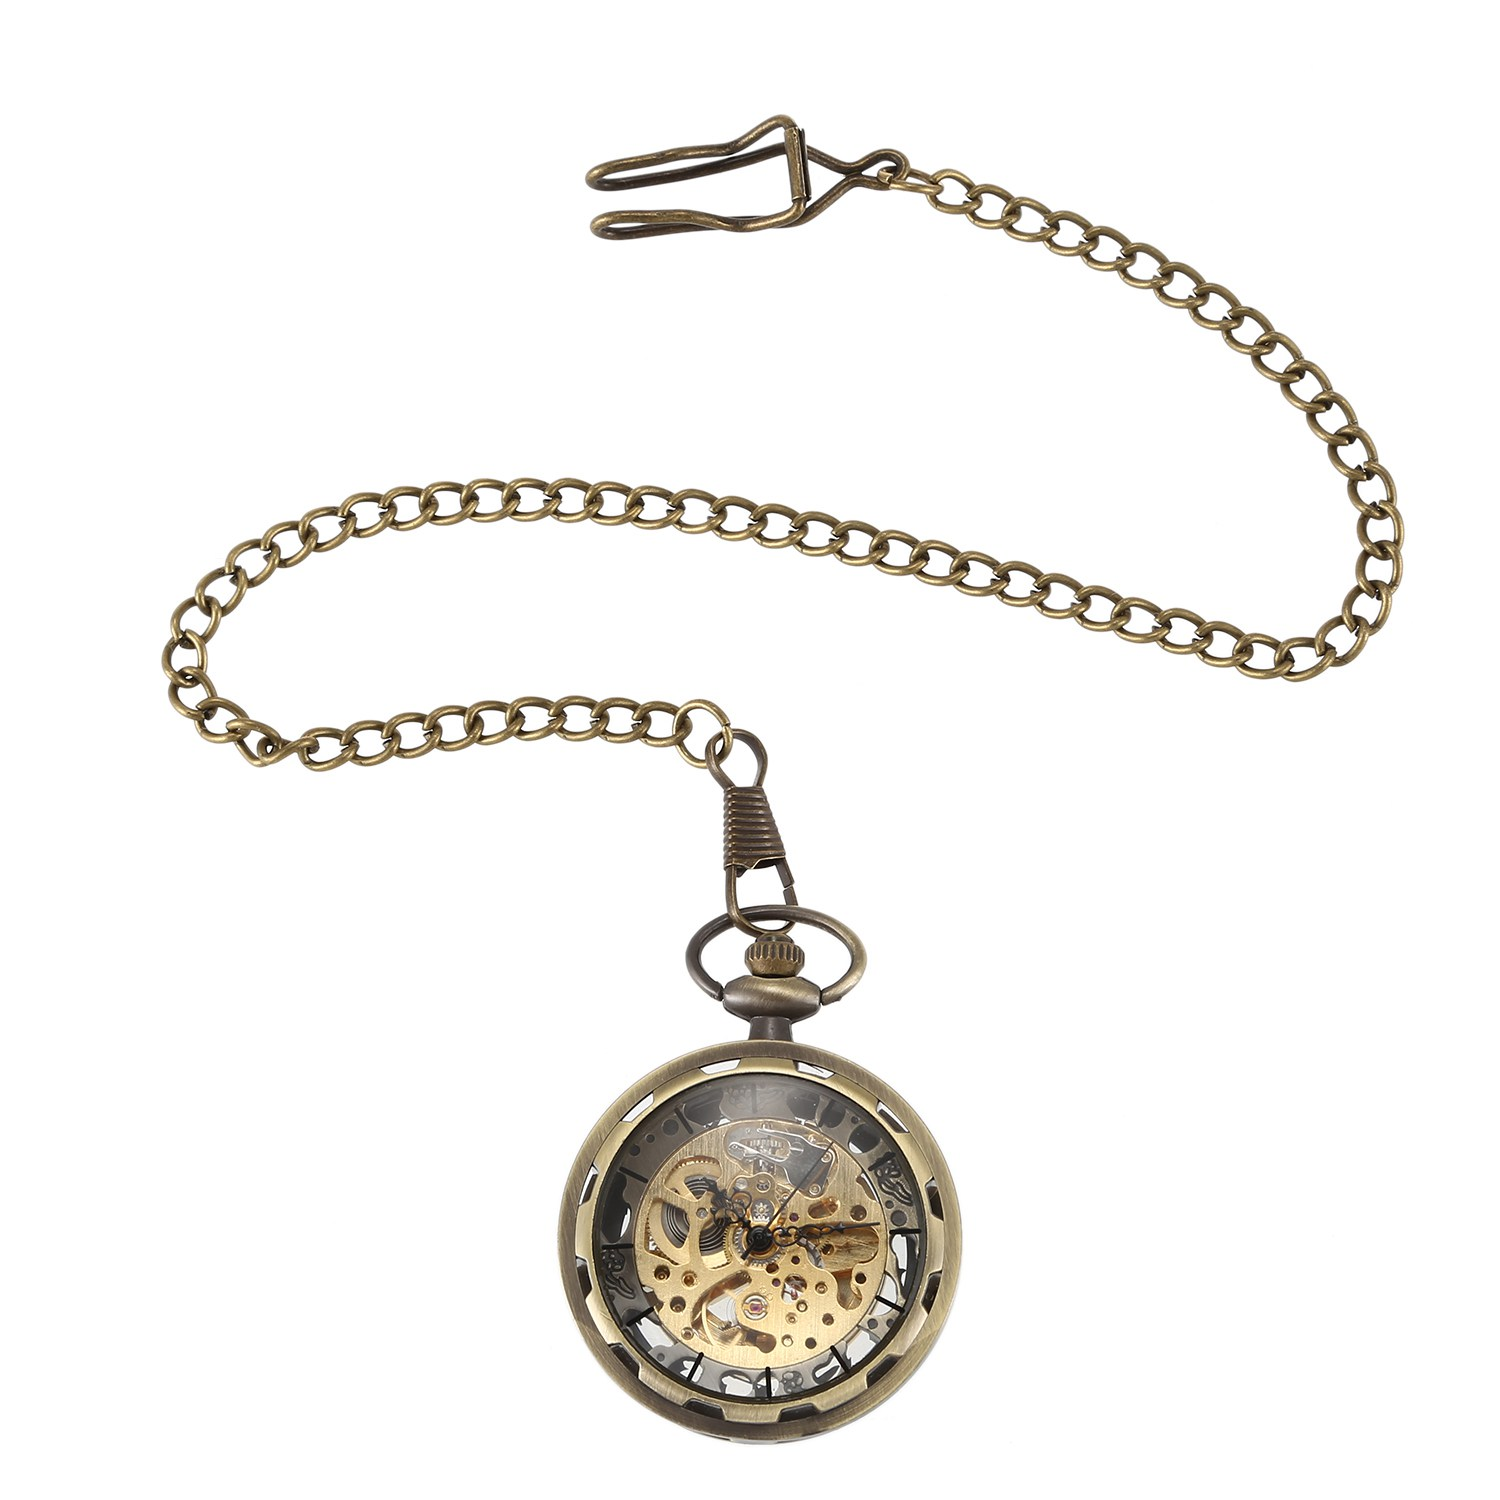 Mechanical Pocket Watch Steampunk Retro Luxury Pocket Watch Men'S And Women'S Fashion Pocket Watch